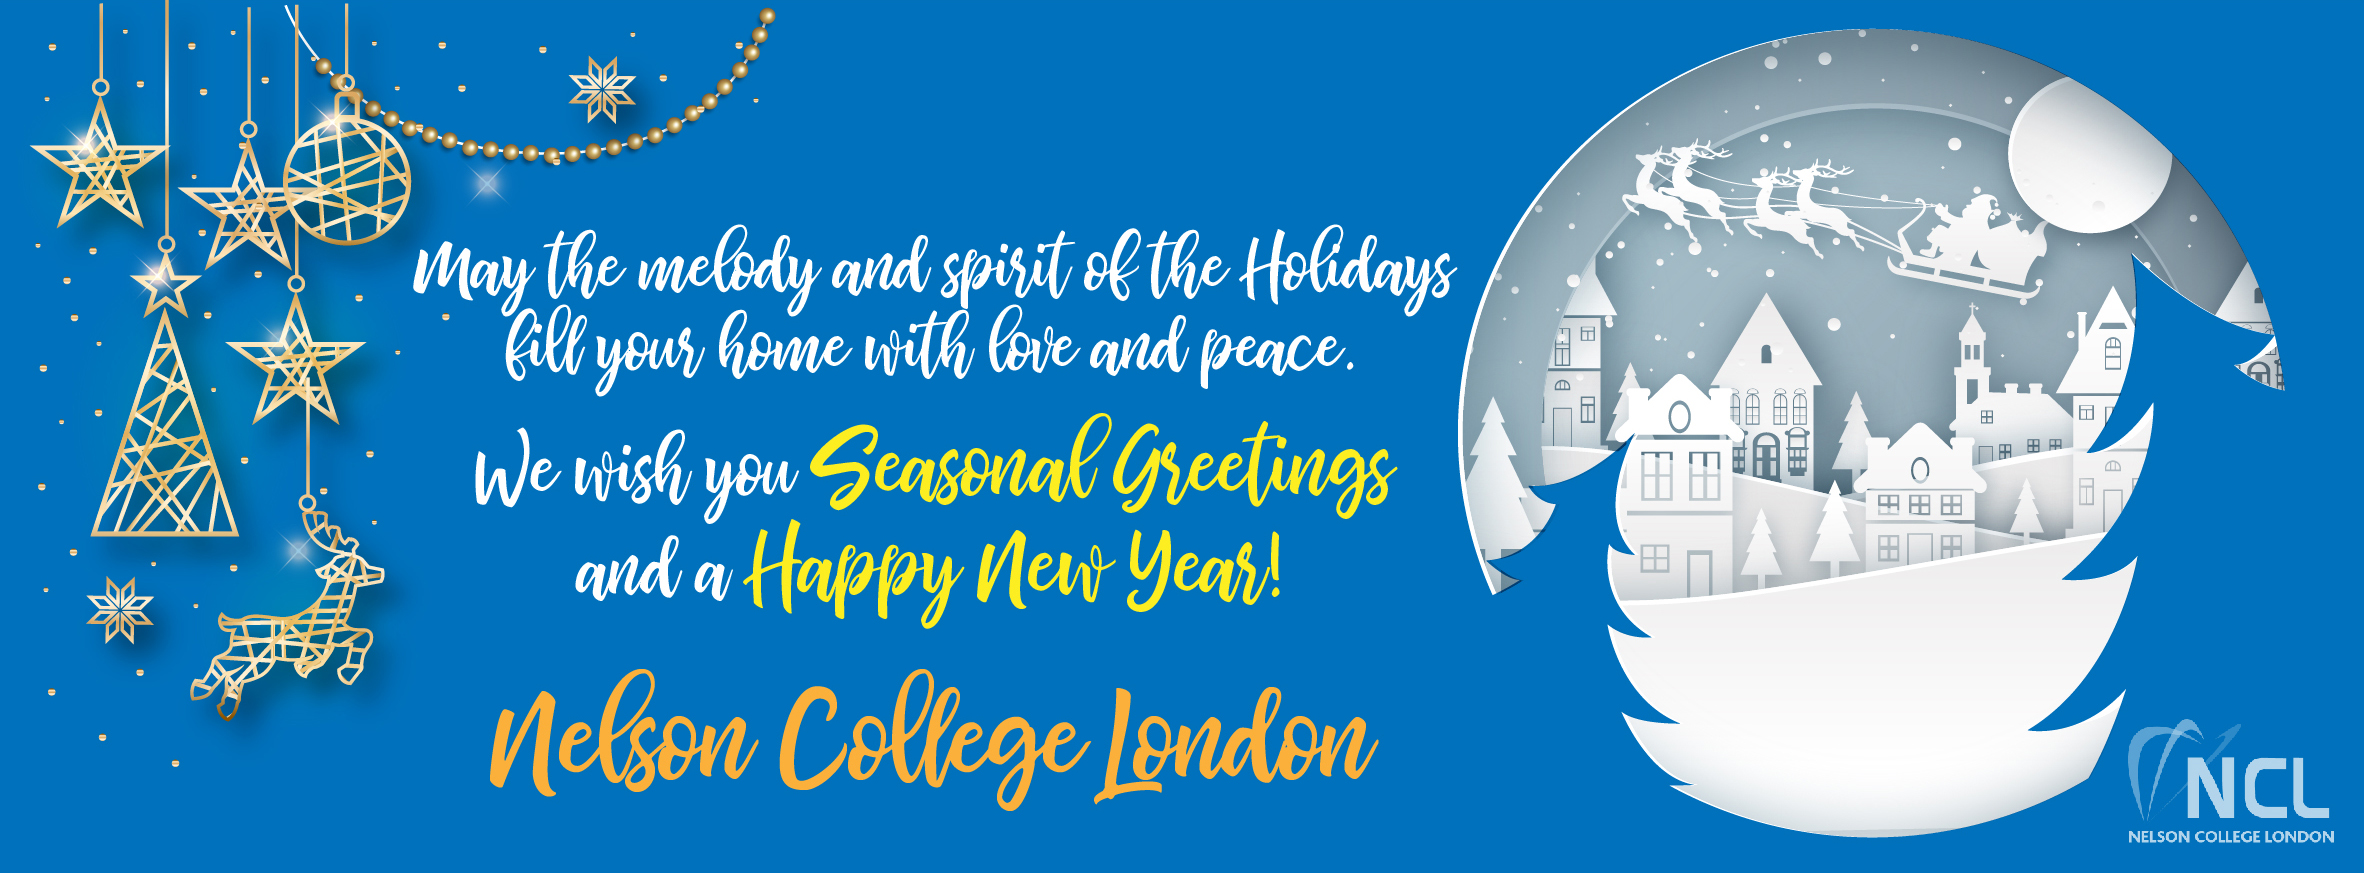 Seasonal Greetings and a Happy New Year